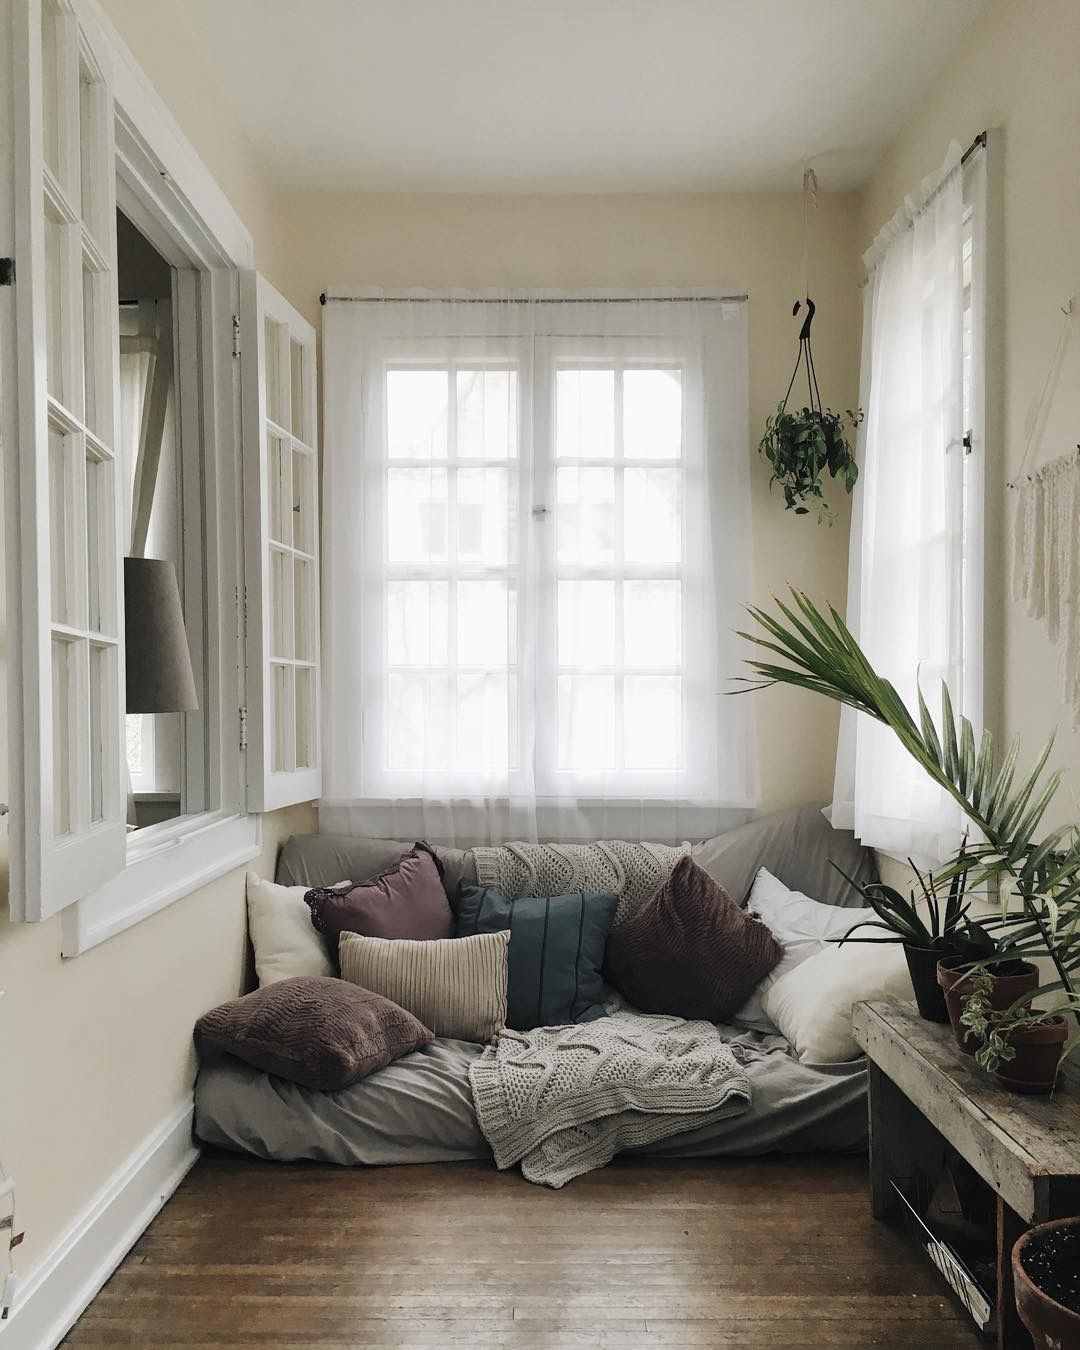 a couch on the ground furniture designs reading nooks | New ...